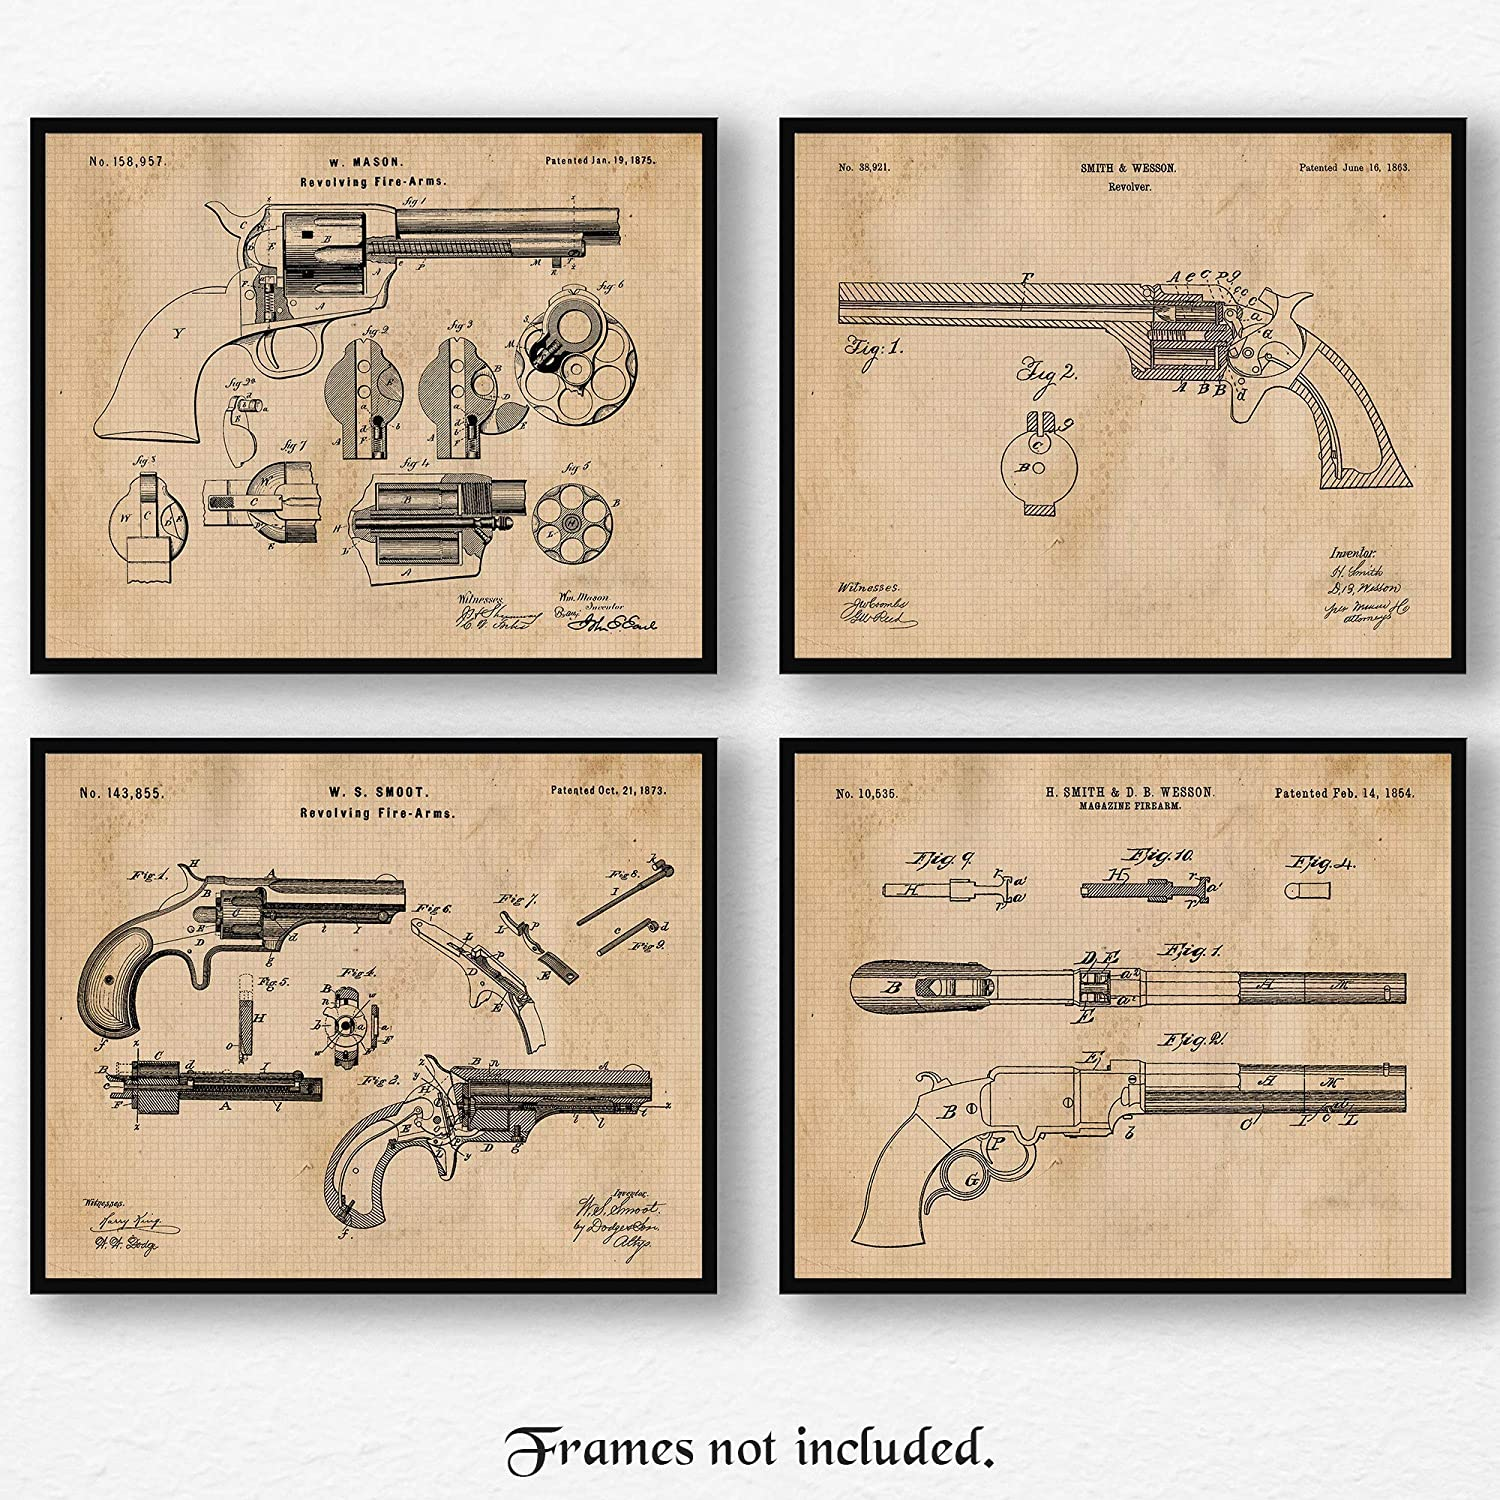 Original Smith & Wesson, Colt Peacemaker Gun Patent Poster Prints, Set of 4 (8x10) Unframed Photos, Wall Art Decor Gifts Under 20 for Home, Shop, College Student, Teacher, Cowboys, NRA & Movies Fan